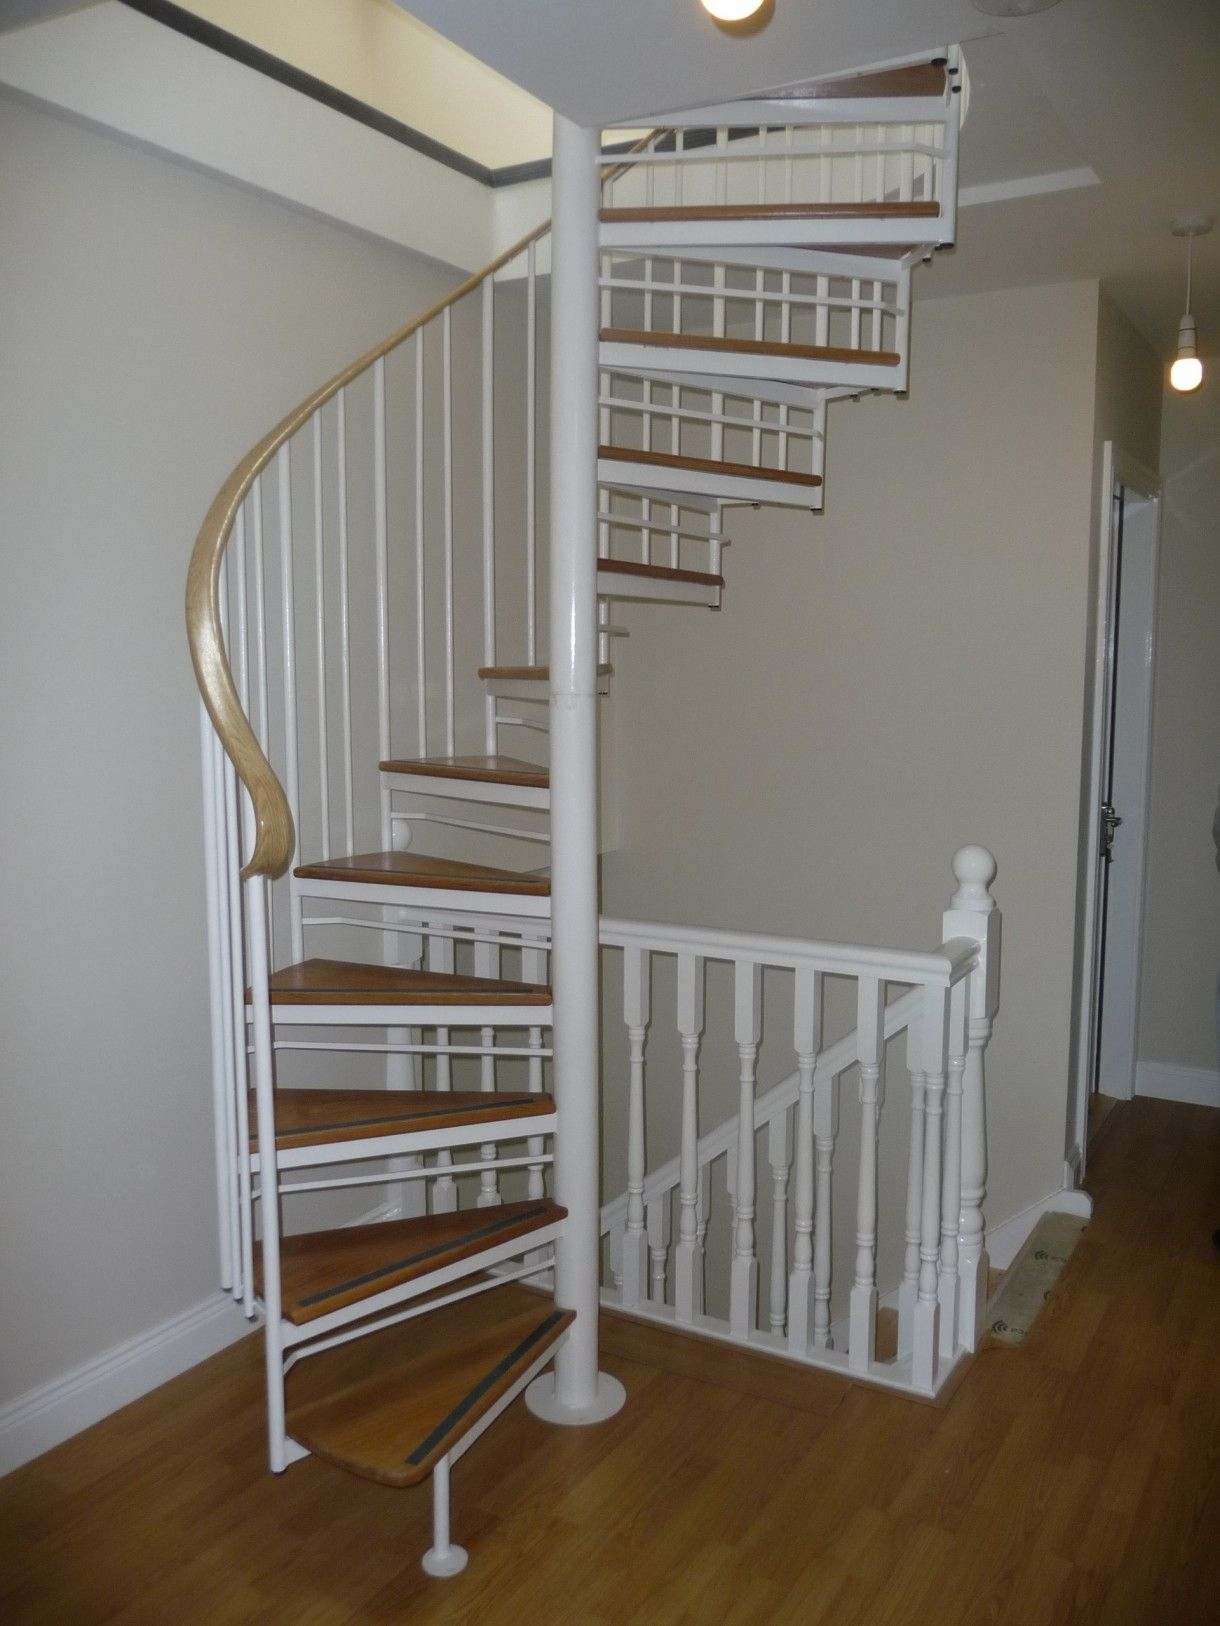 Metal Spiral Staircase For Sale Violet Hill' Executive Spiral Stairs Next Door Neighbor | Spiral Staircase For Sale